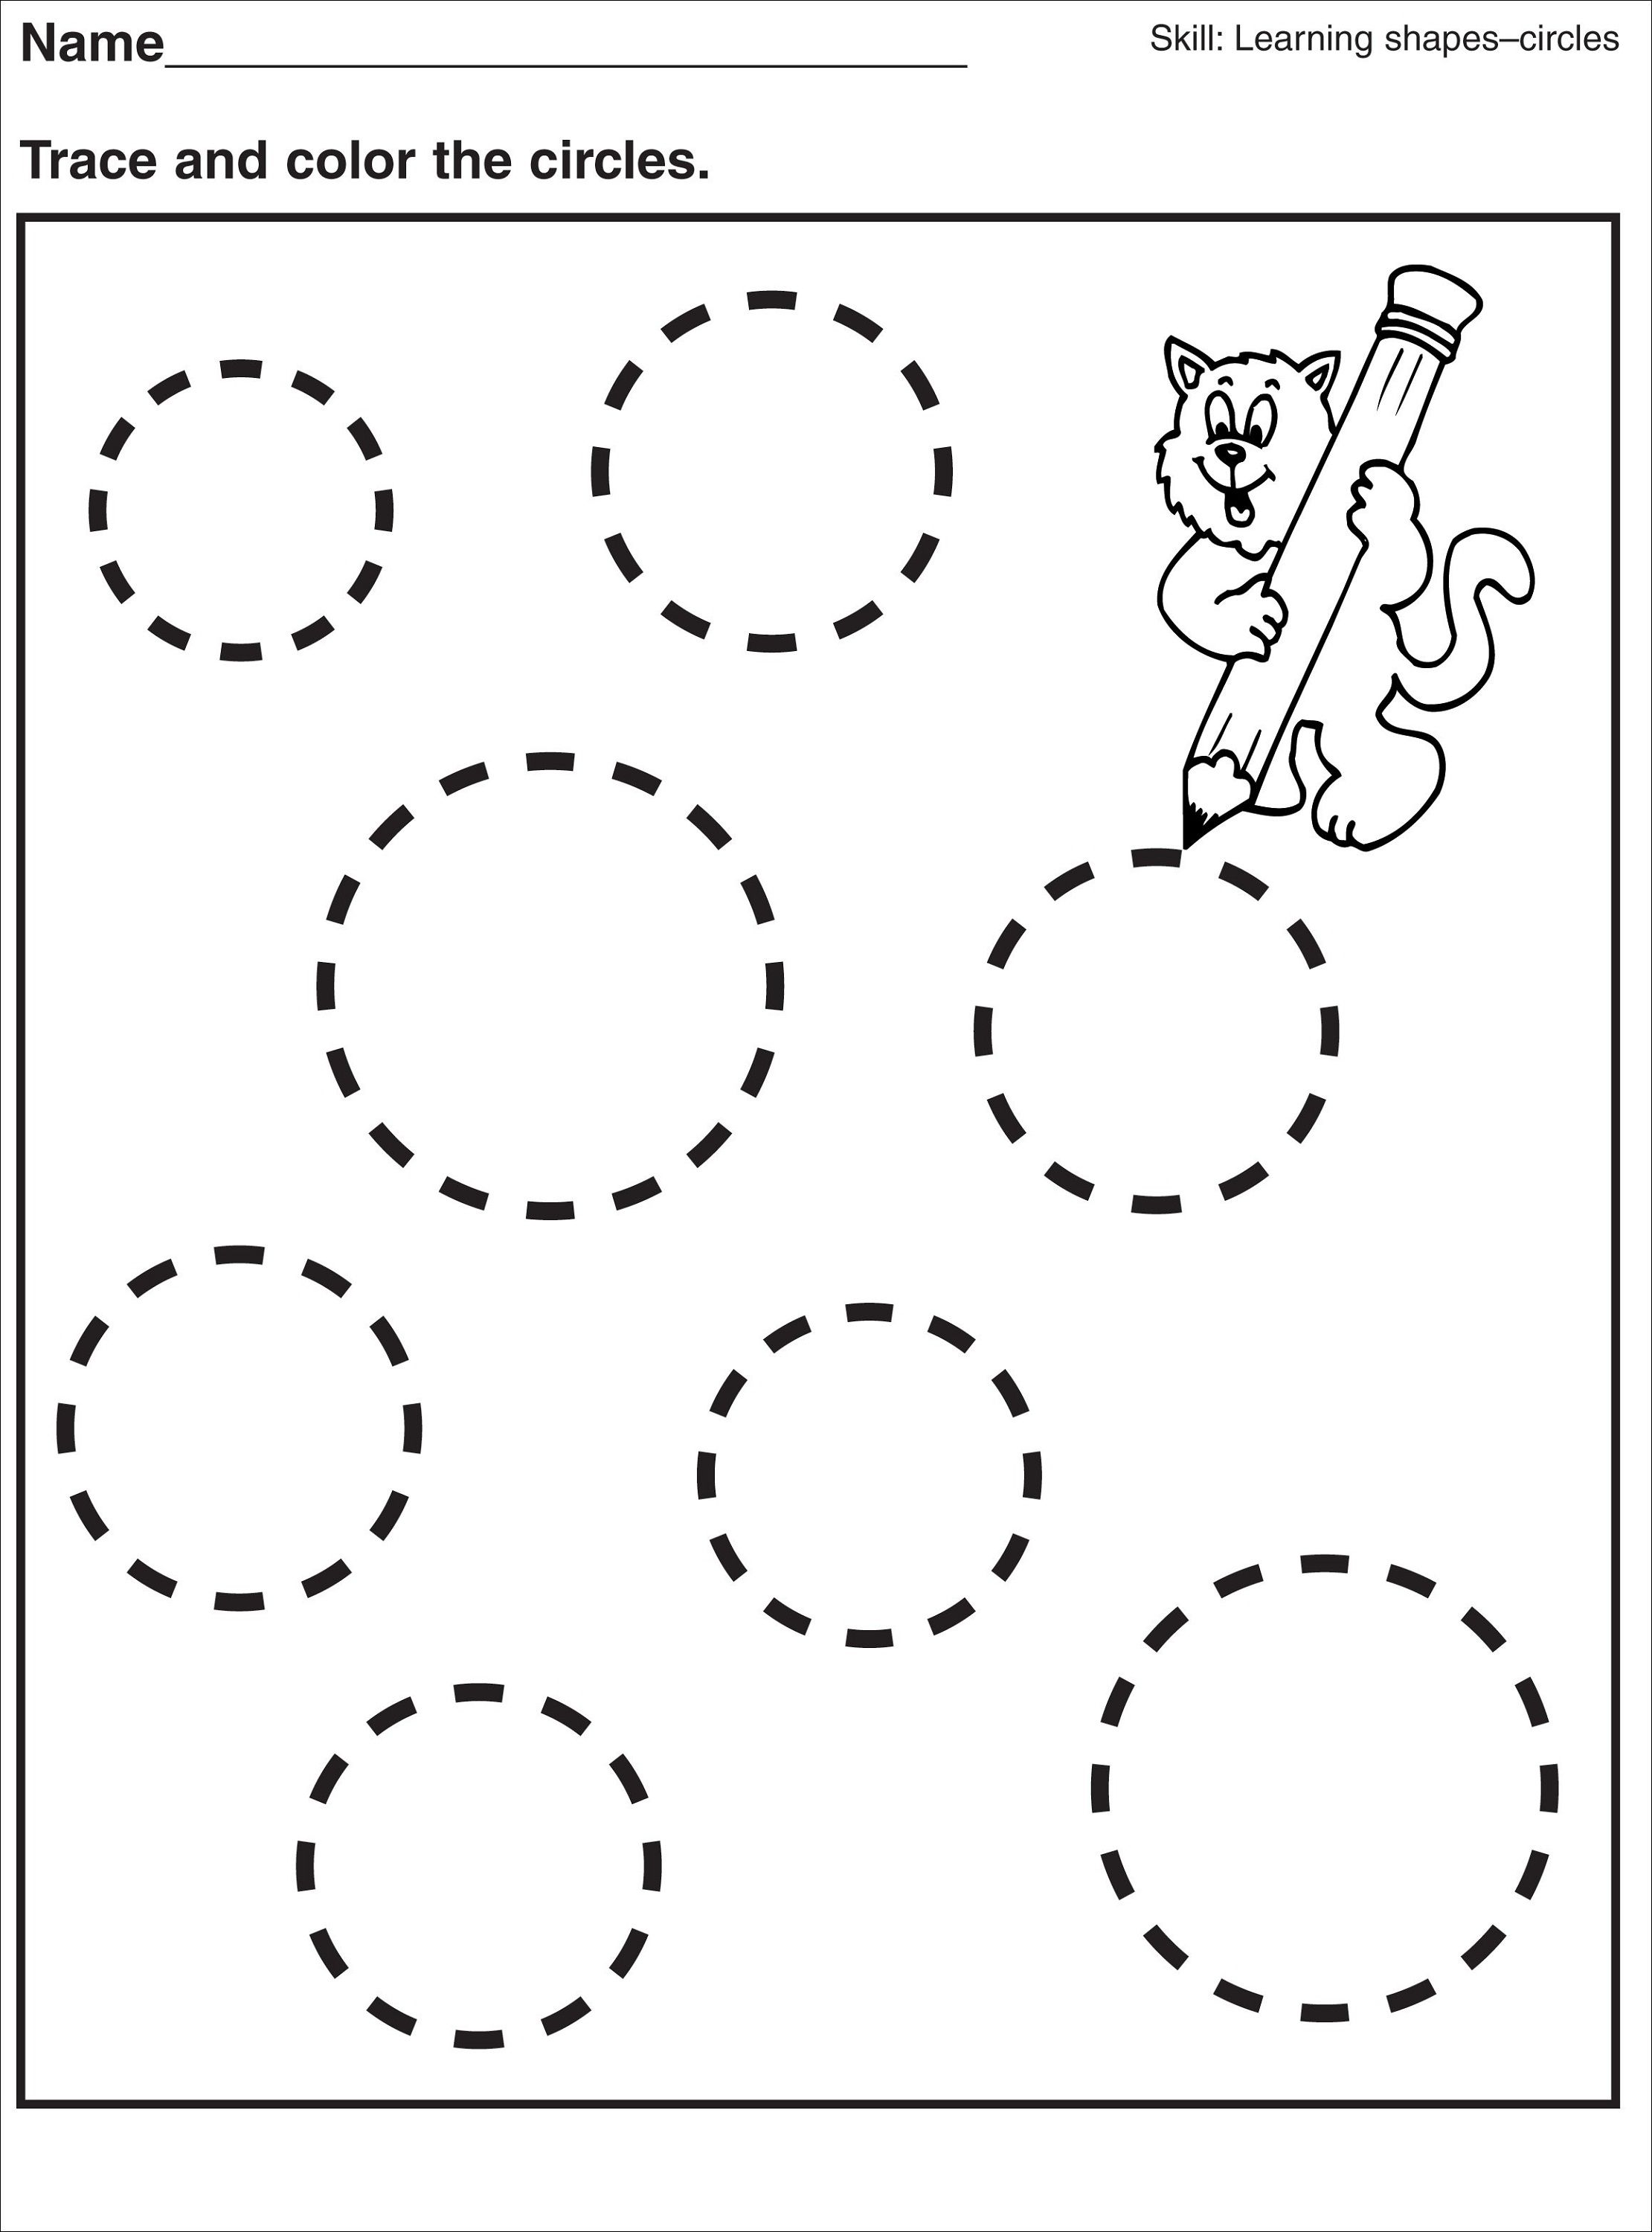 worksheet Kindergarten Tracing Worksheets tracing circle worksheets for preschool activity shelter kids shelter